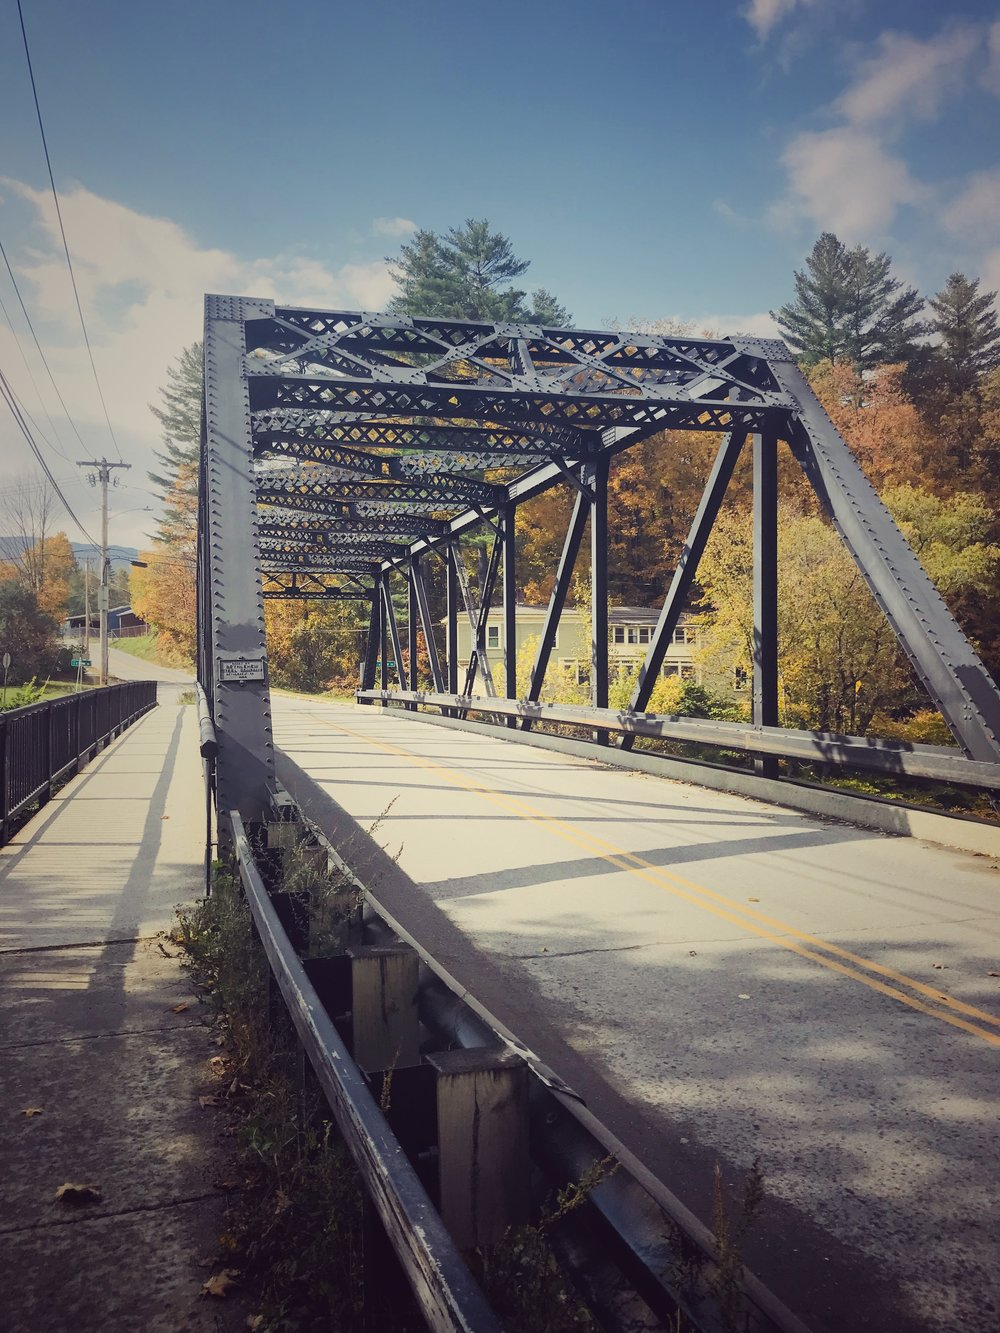 Cute bridge and fall colors on the way to our house for the week.